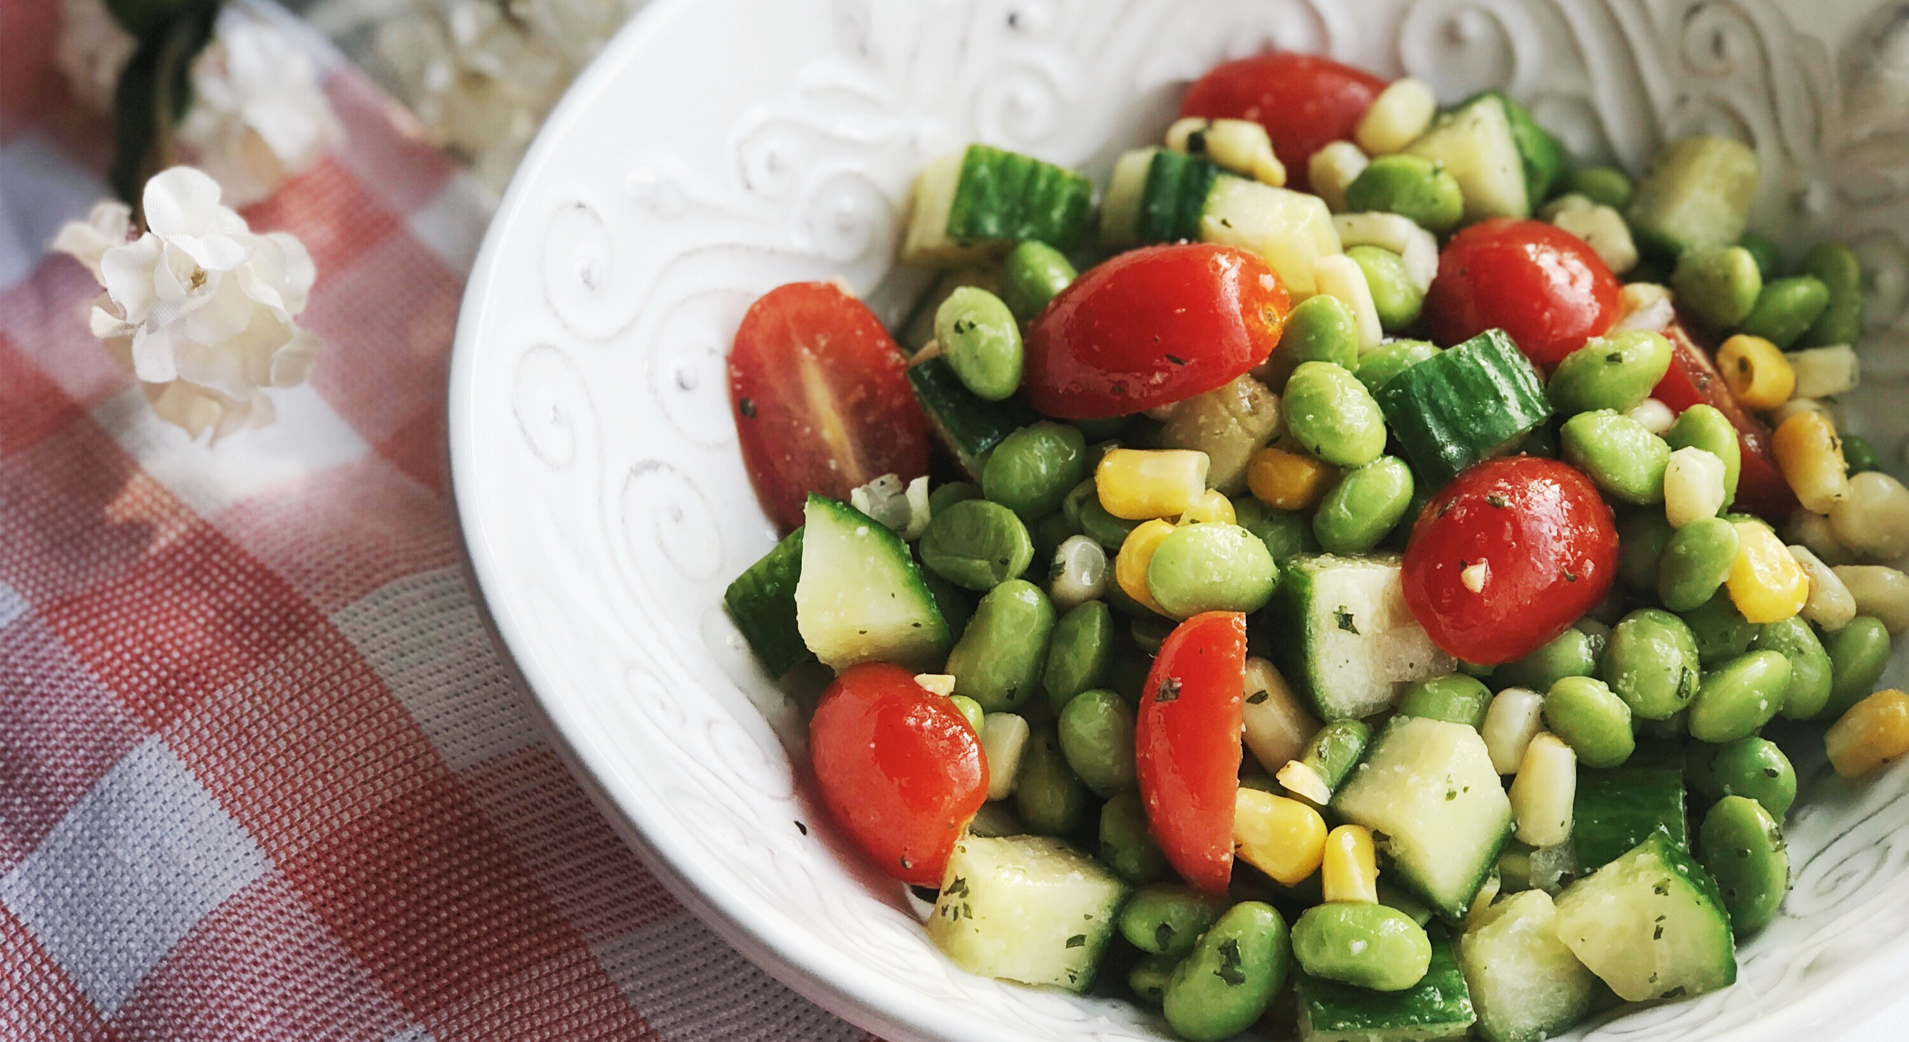 myWW Weight Watchers Zero Smartpoint Edamame Salad